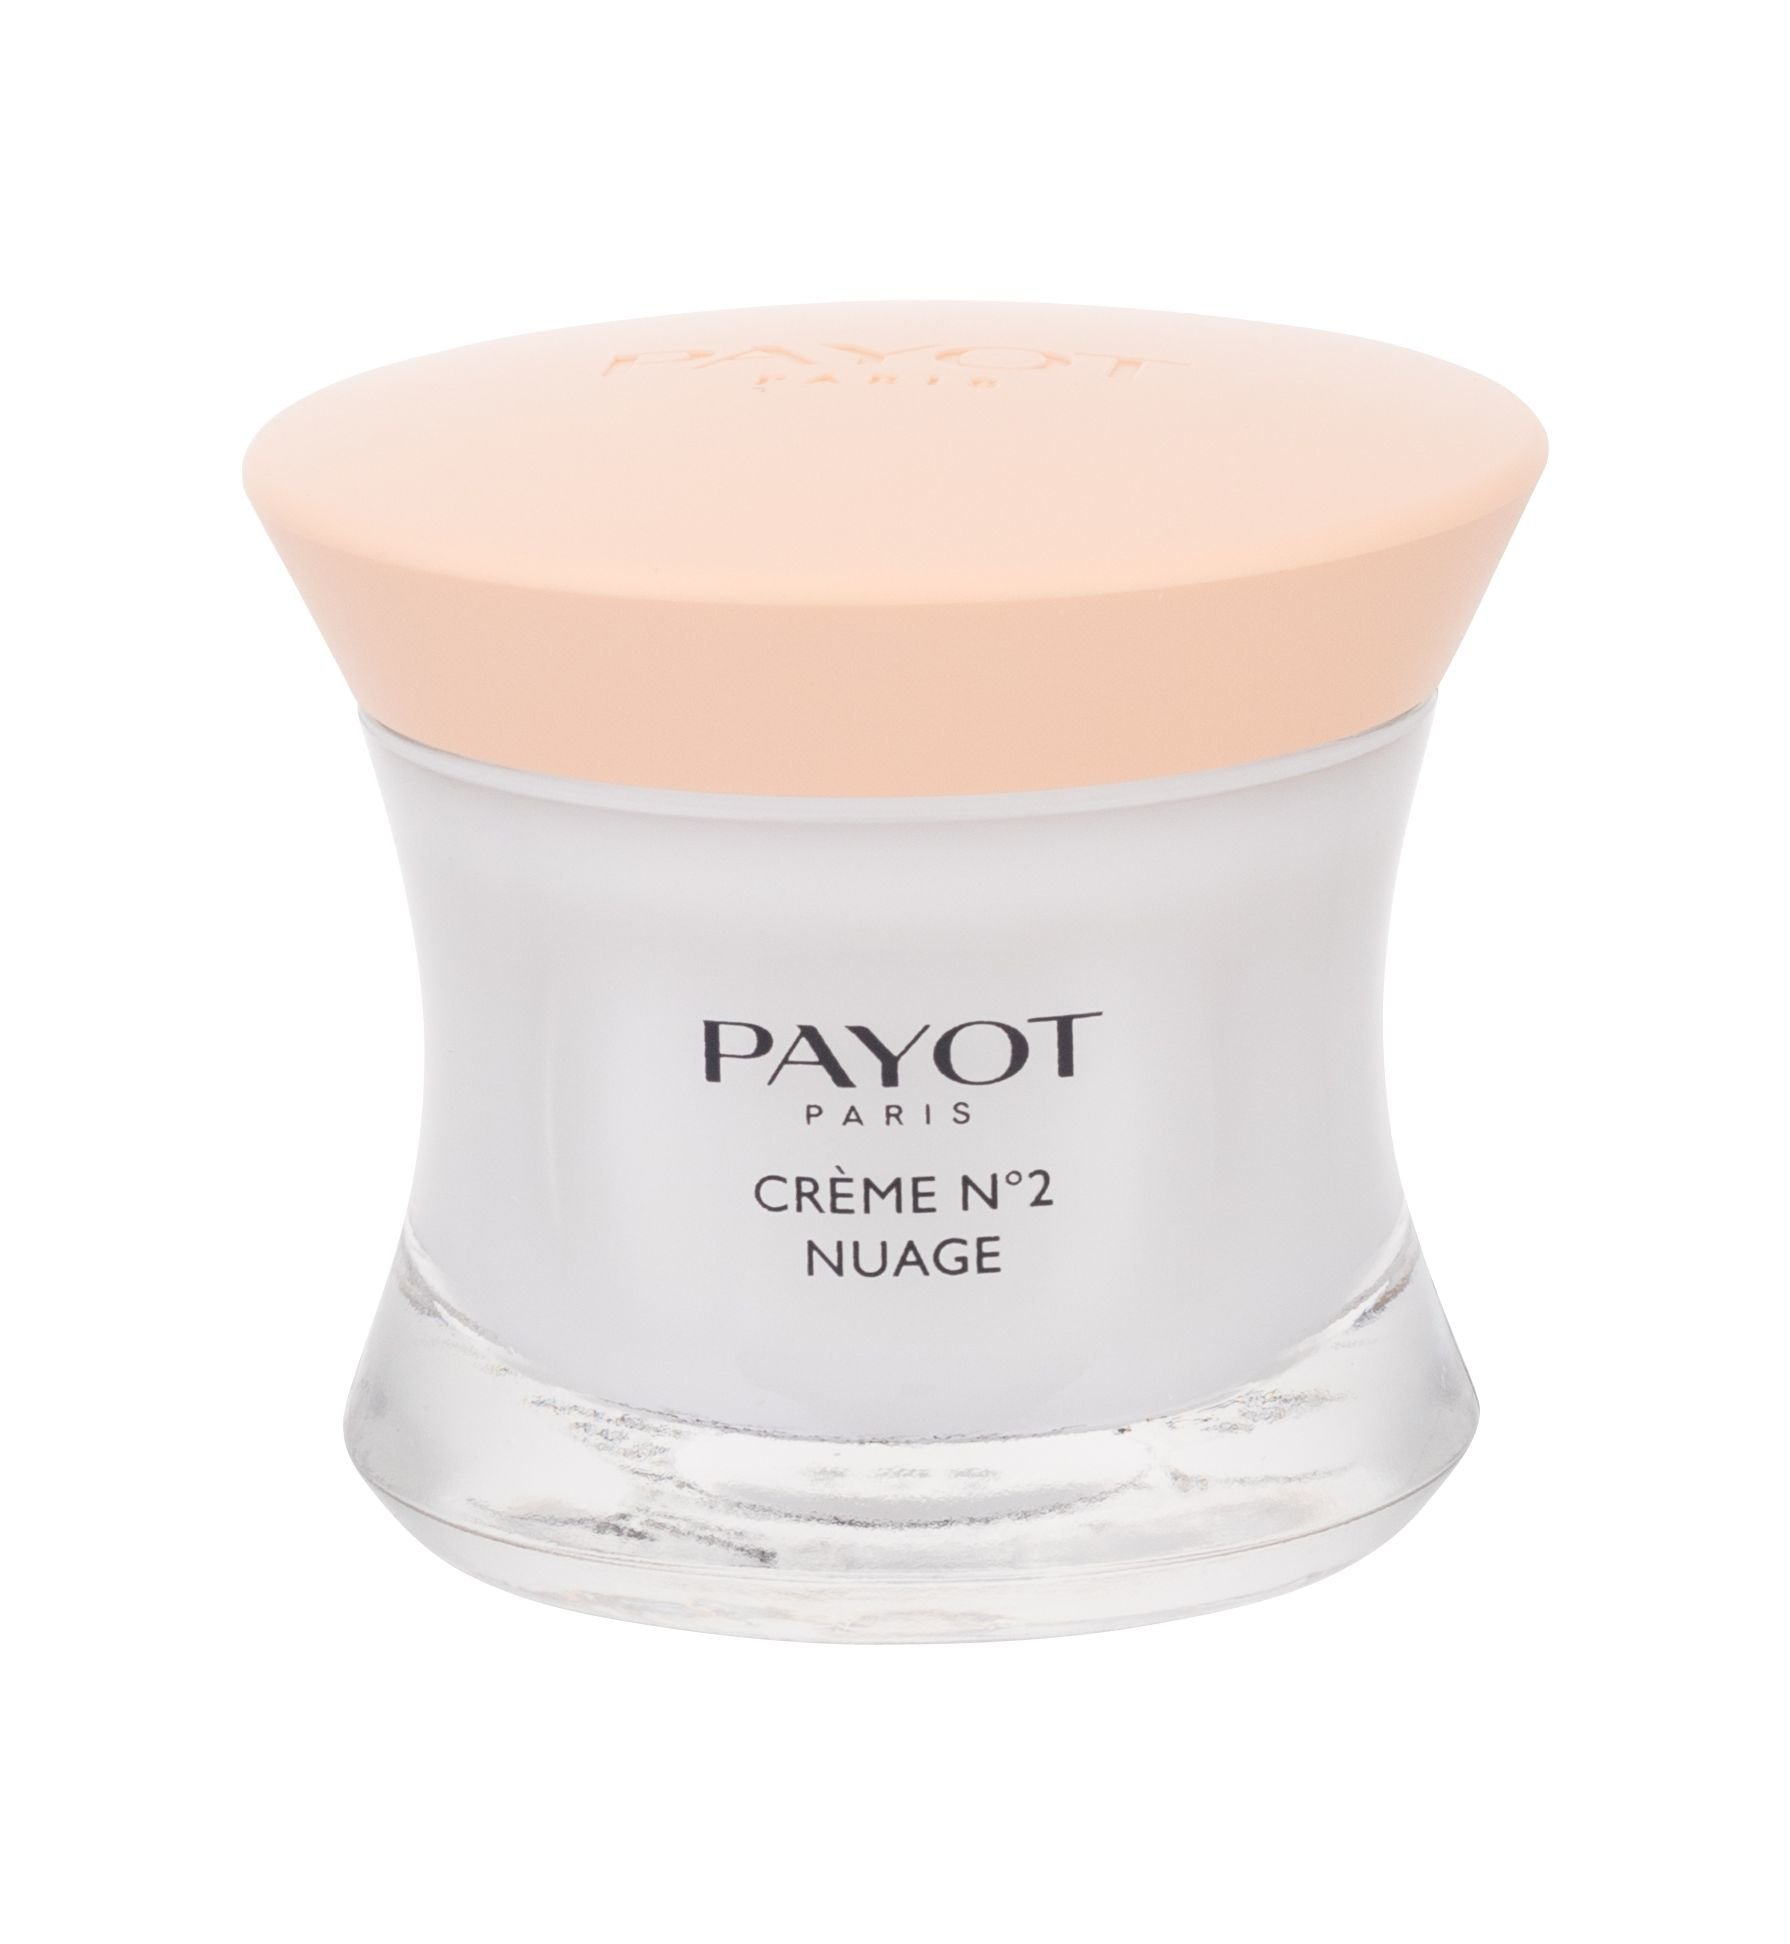 PAYOT Creme No2 Day Cream 50ml